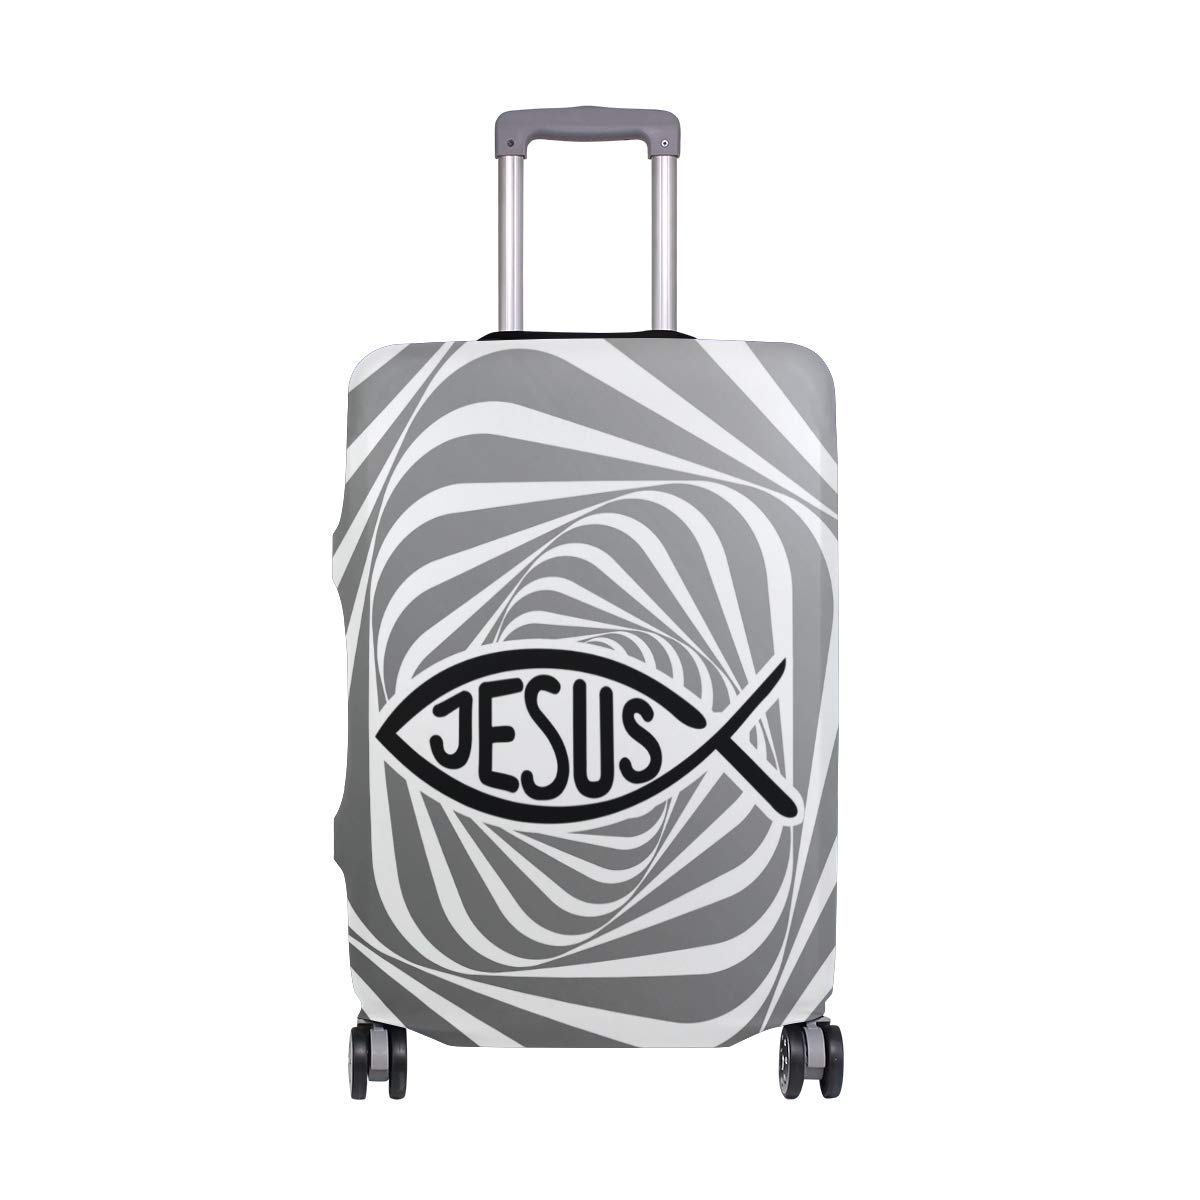 Jesus Fish Travel Luggage Cover - Suitcase Protector HLive Spandex Dust Proof Covers with Zipper, Fits 18-32 inch